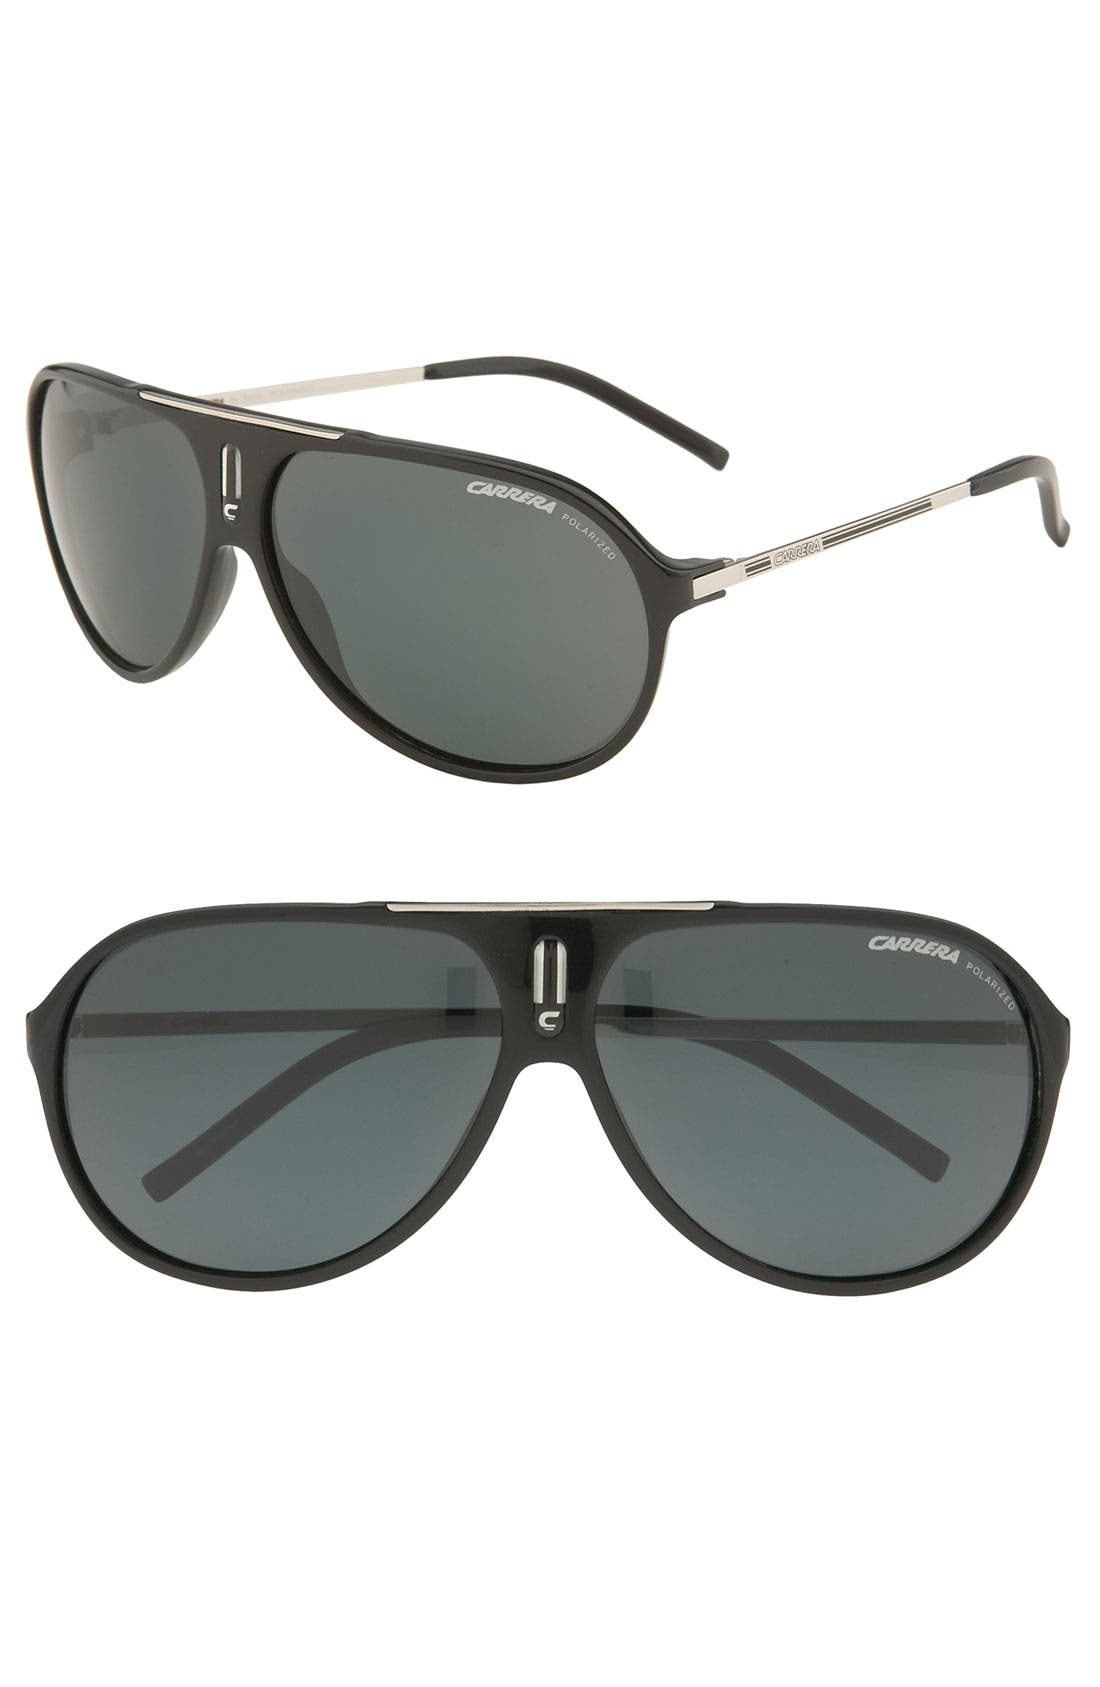 Alternate Image 1 Selected - Carrera Eyewear 'Hot' 64mm Polarized Vintage Inspired Aviator Sunglasses